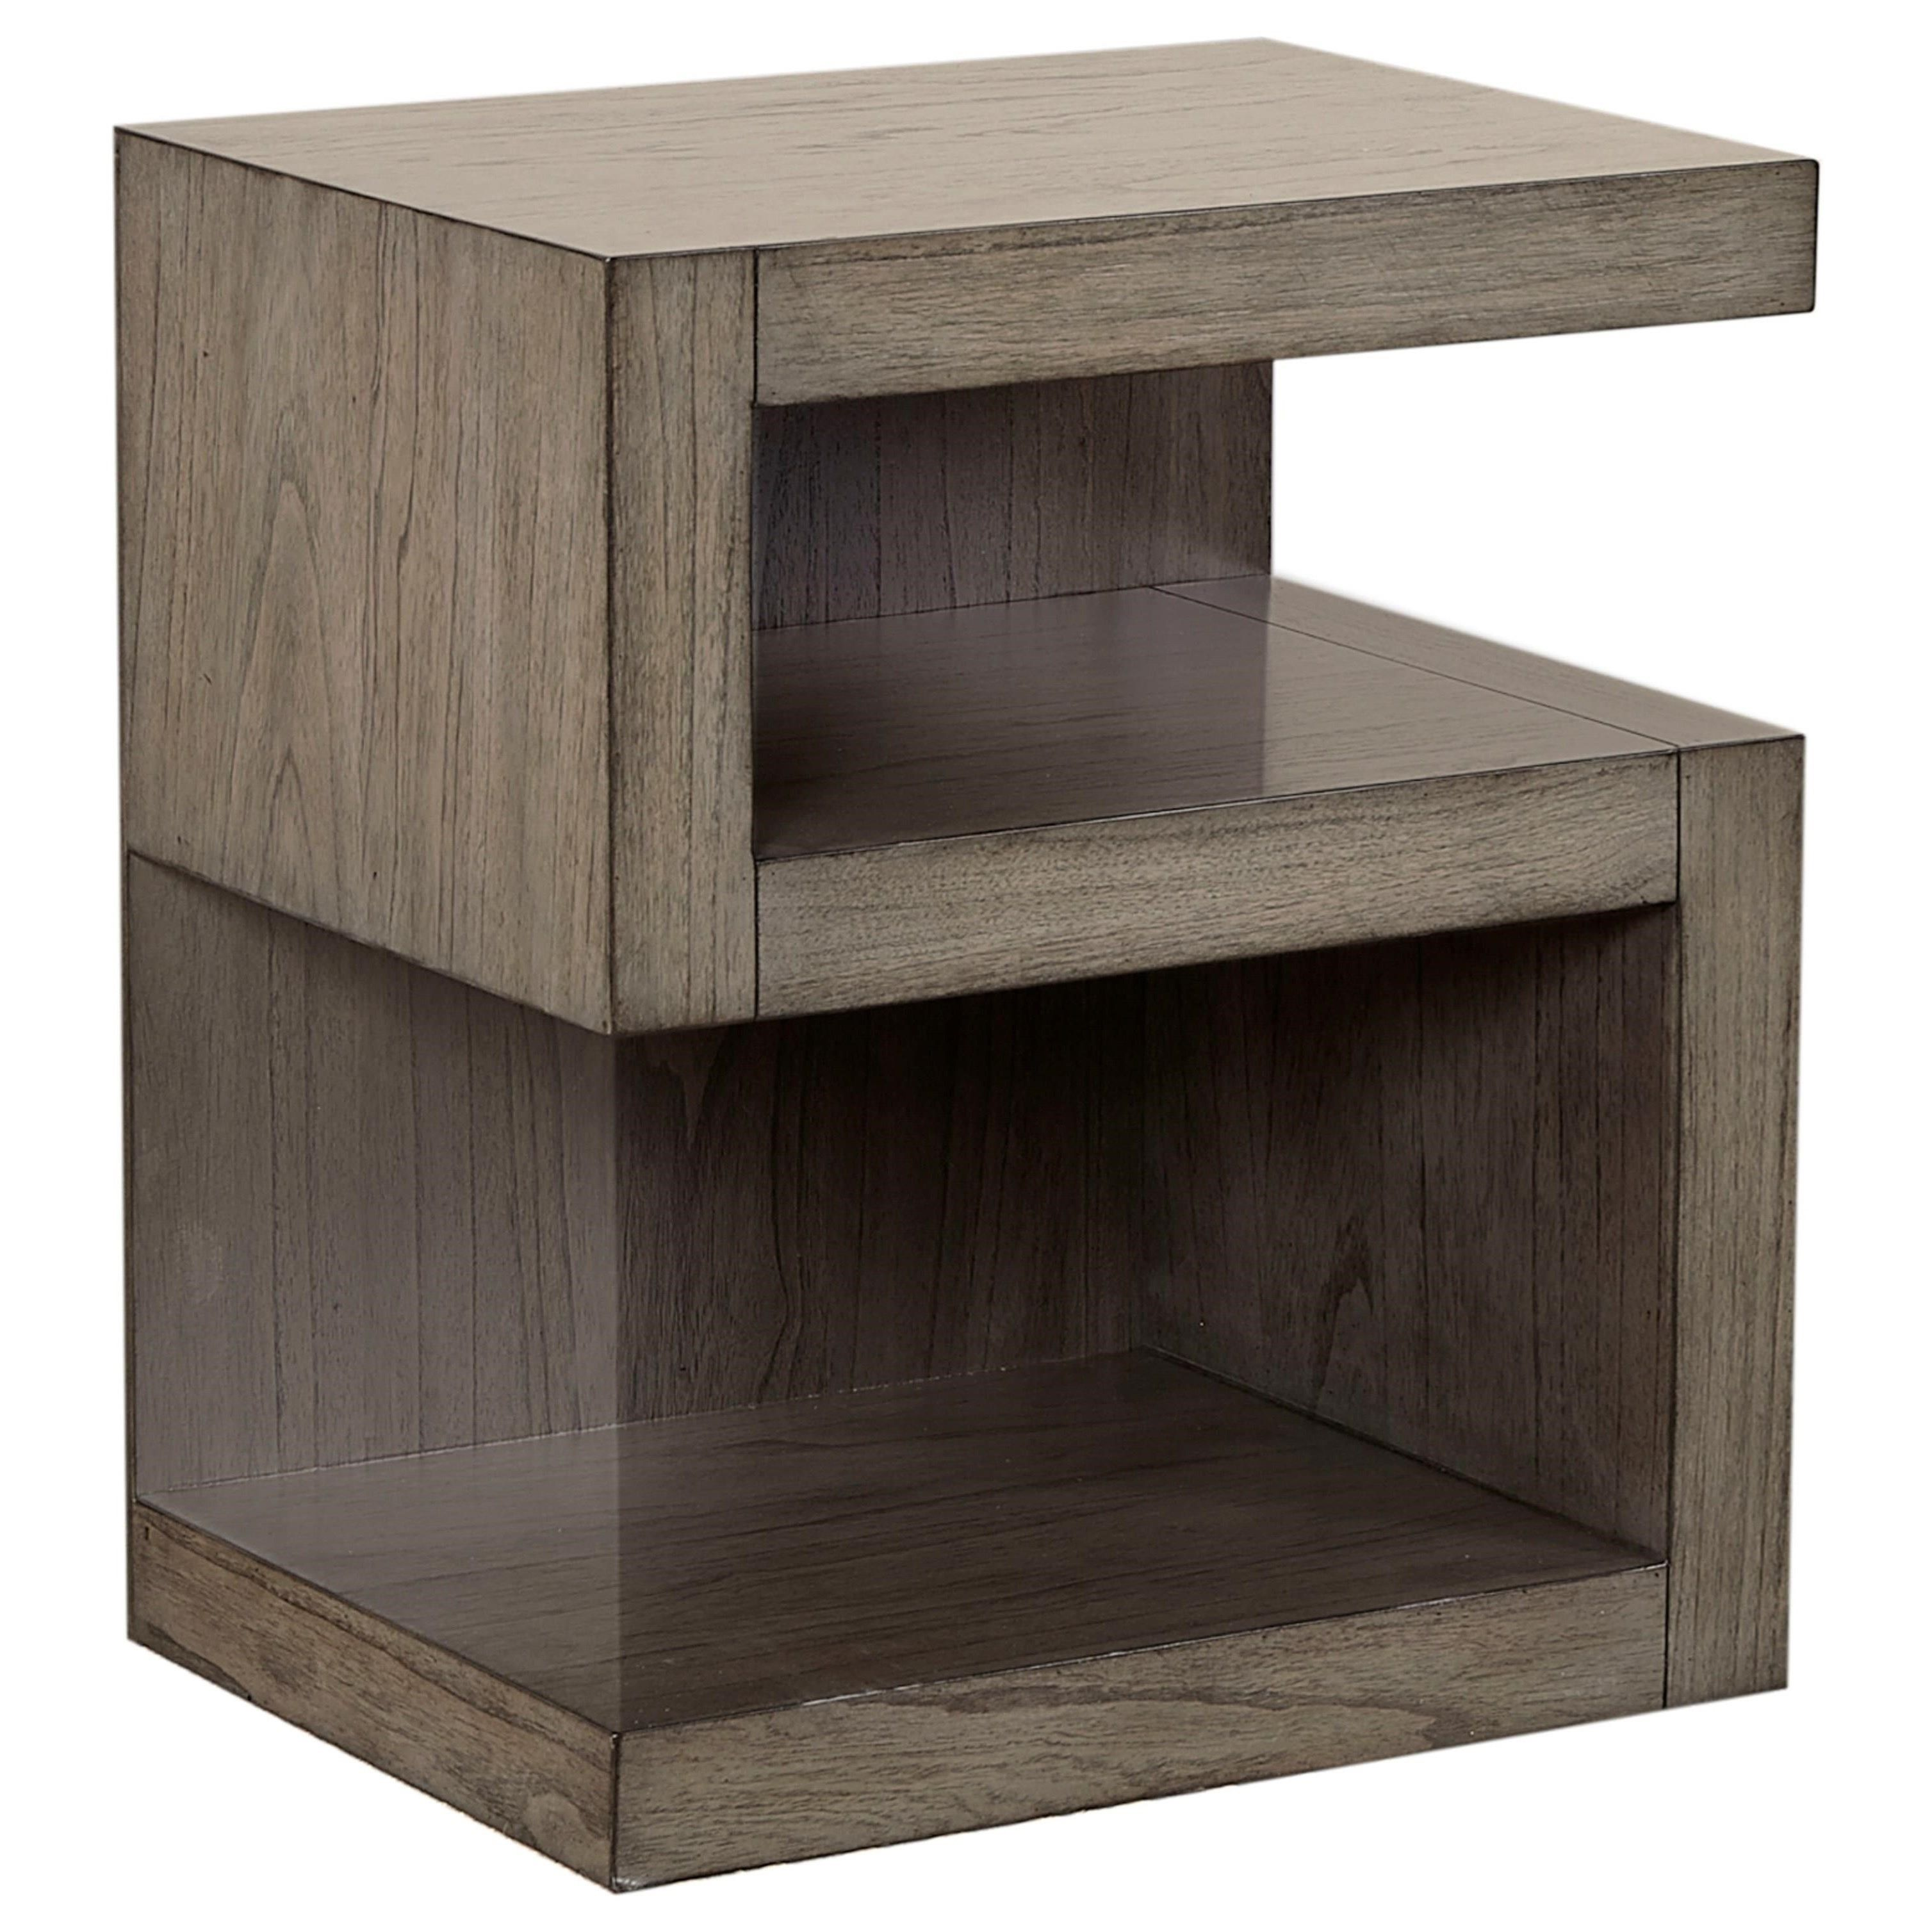 Modern Loft S Nightstand With 2 Shelves By Aspenhome